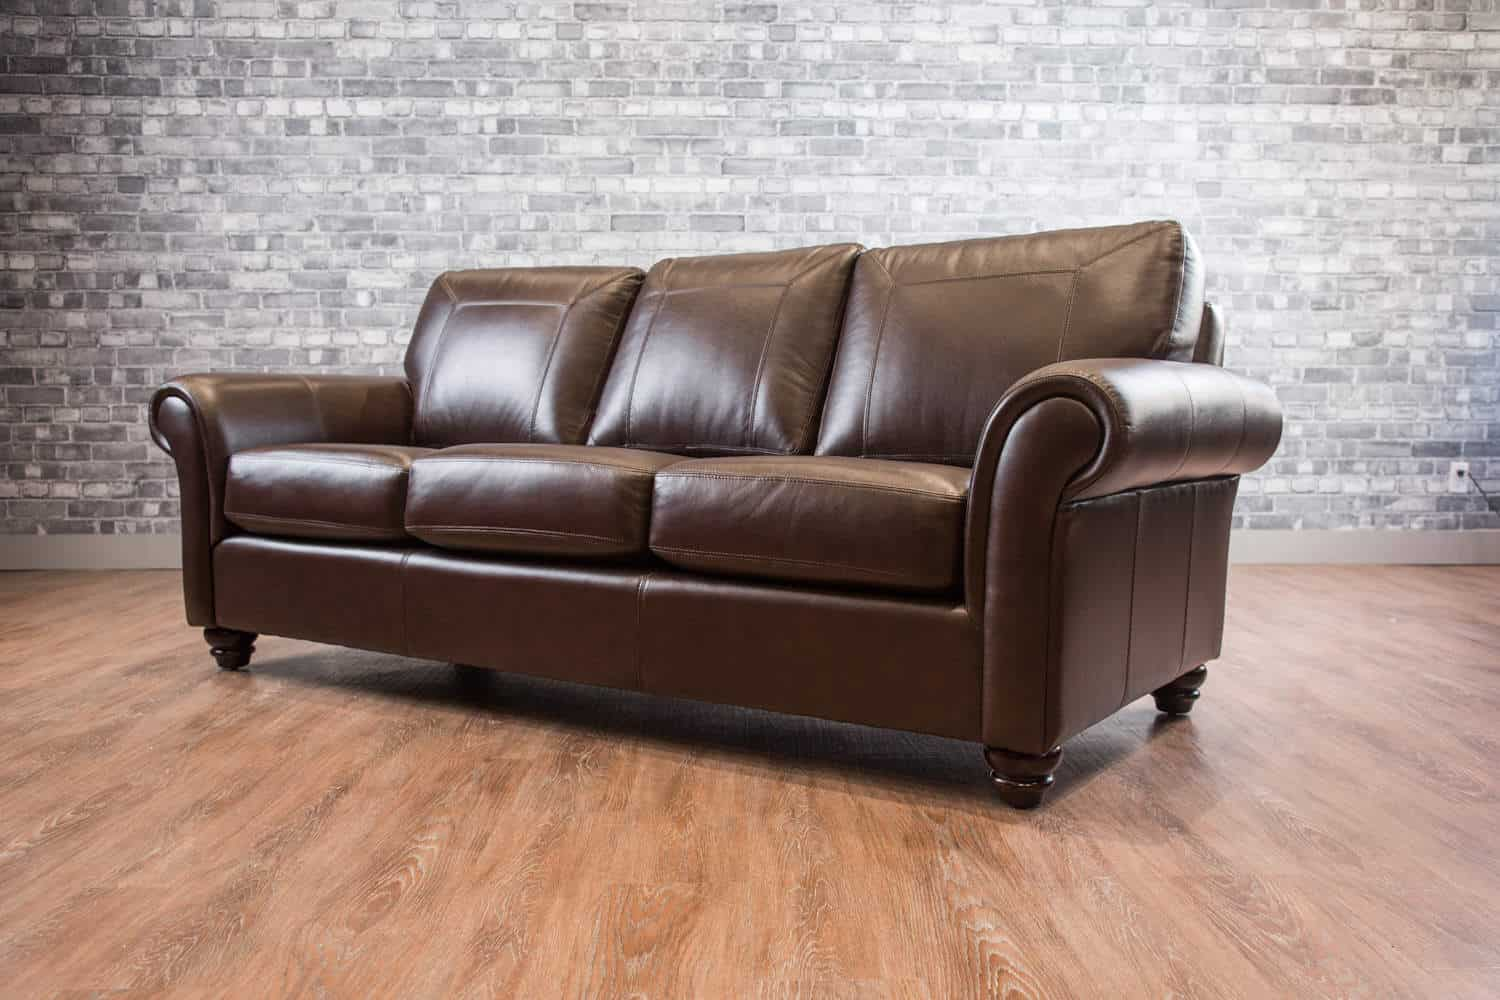 The Bella Leather Sofa Canada S Boss Leather Sofas And